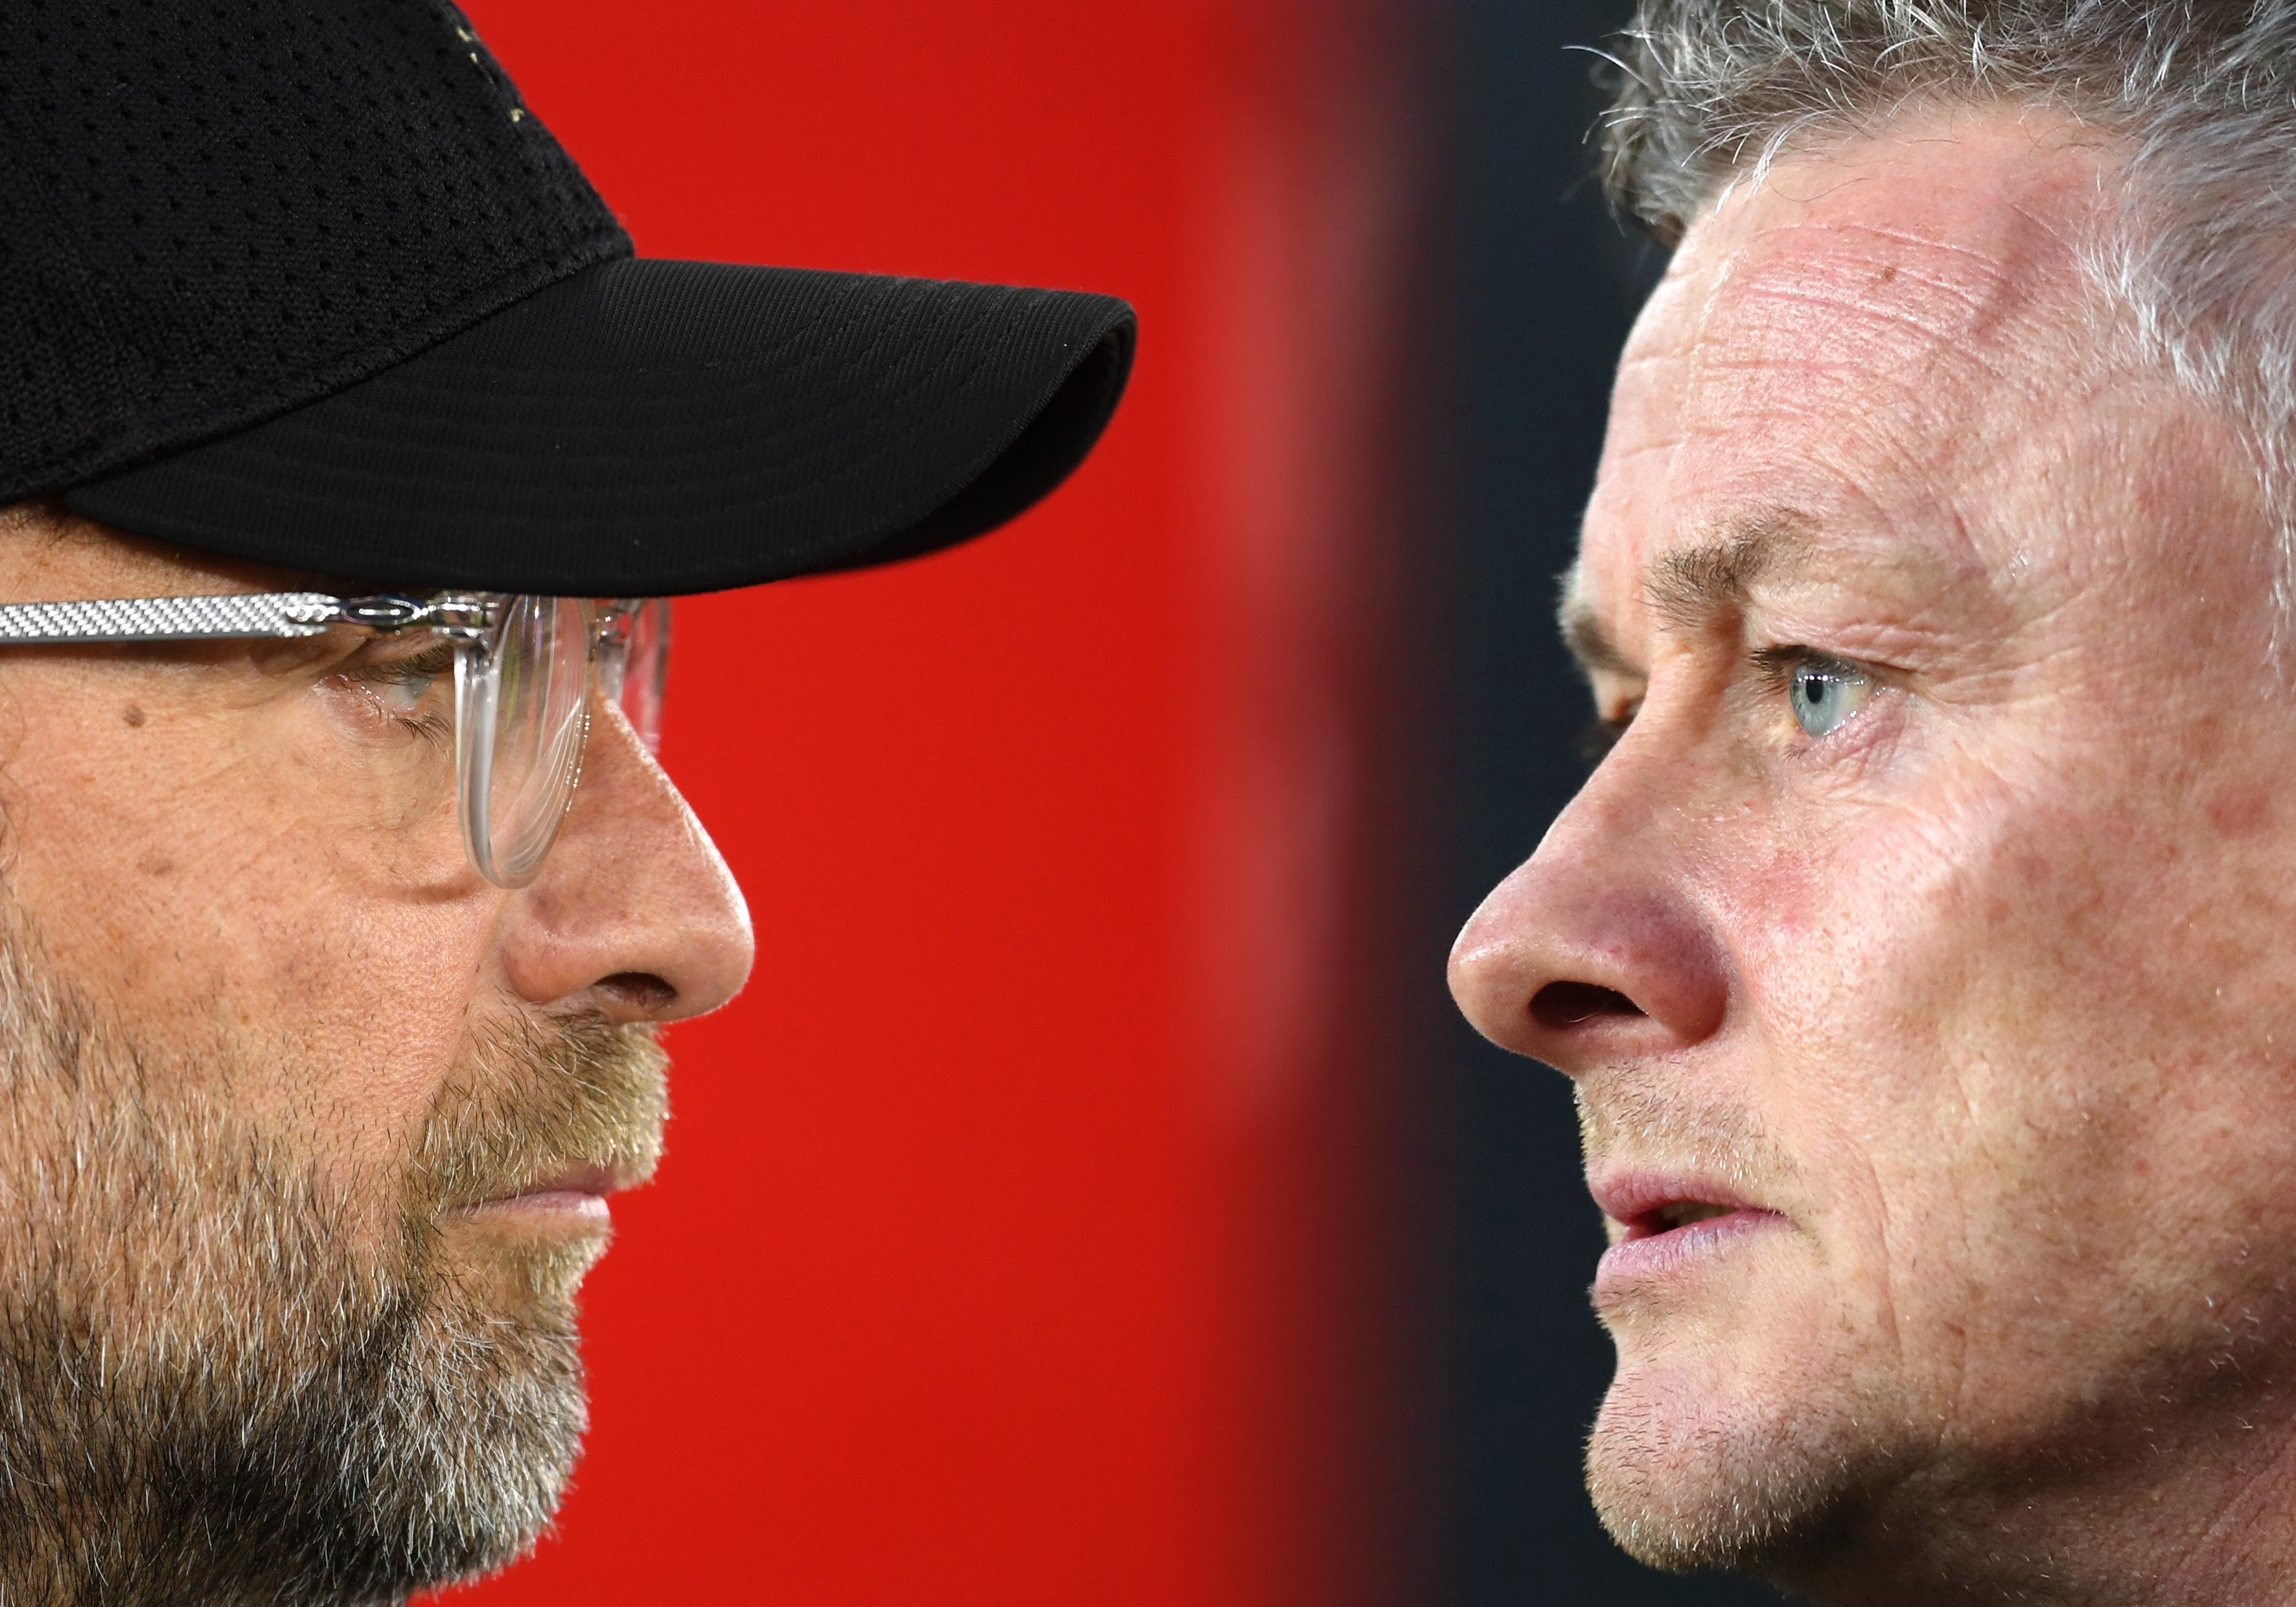 Liverpool Vs Manchester United 19 01 2020 Match Preview And Predicted Starting Xis 90maat